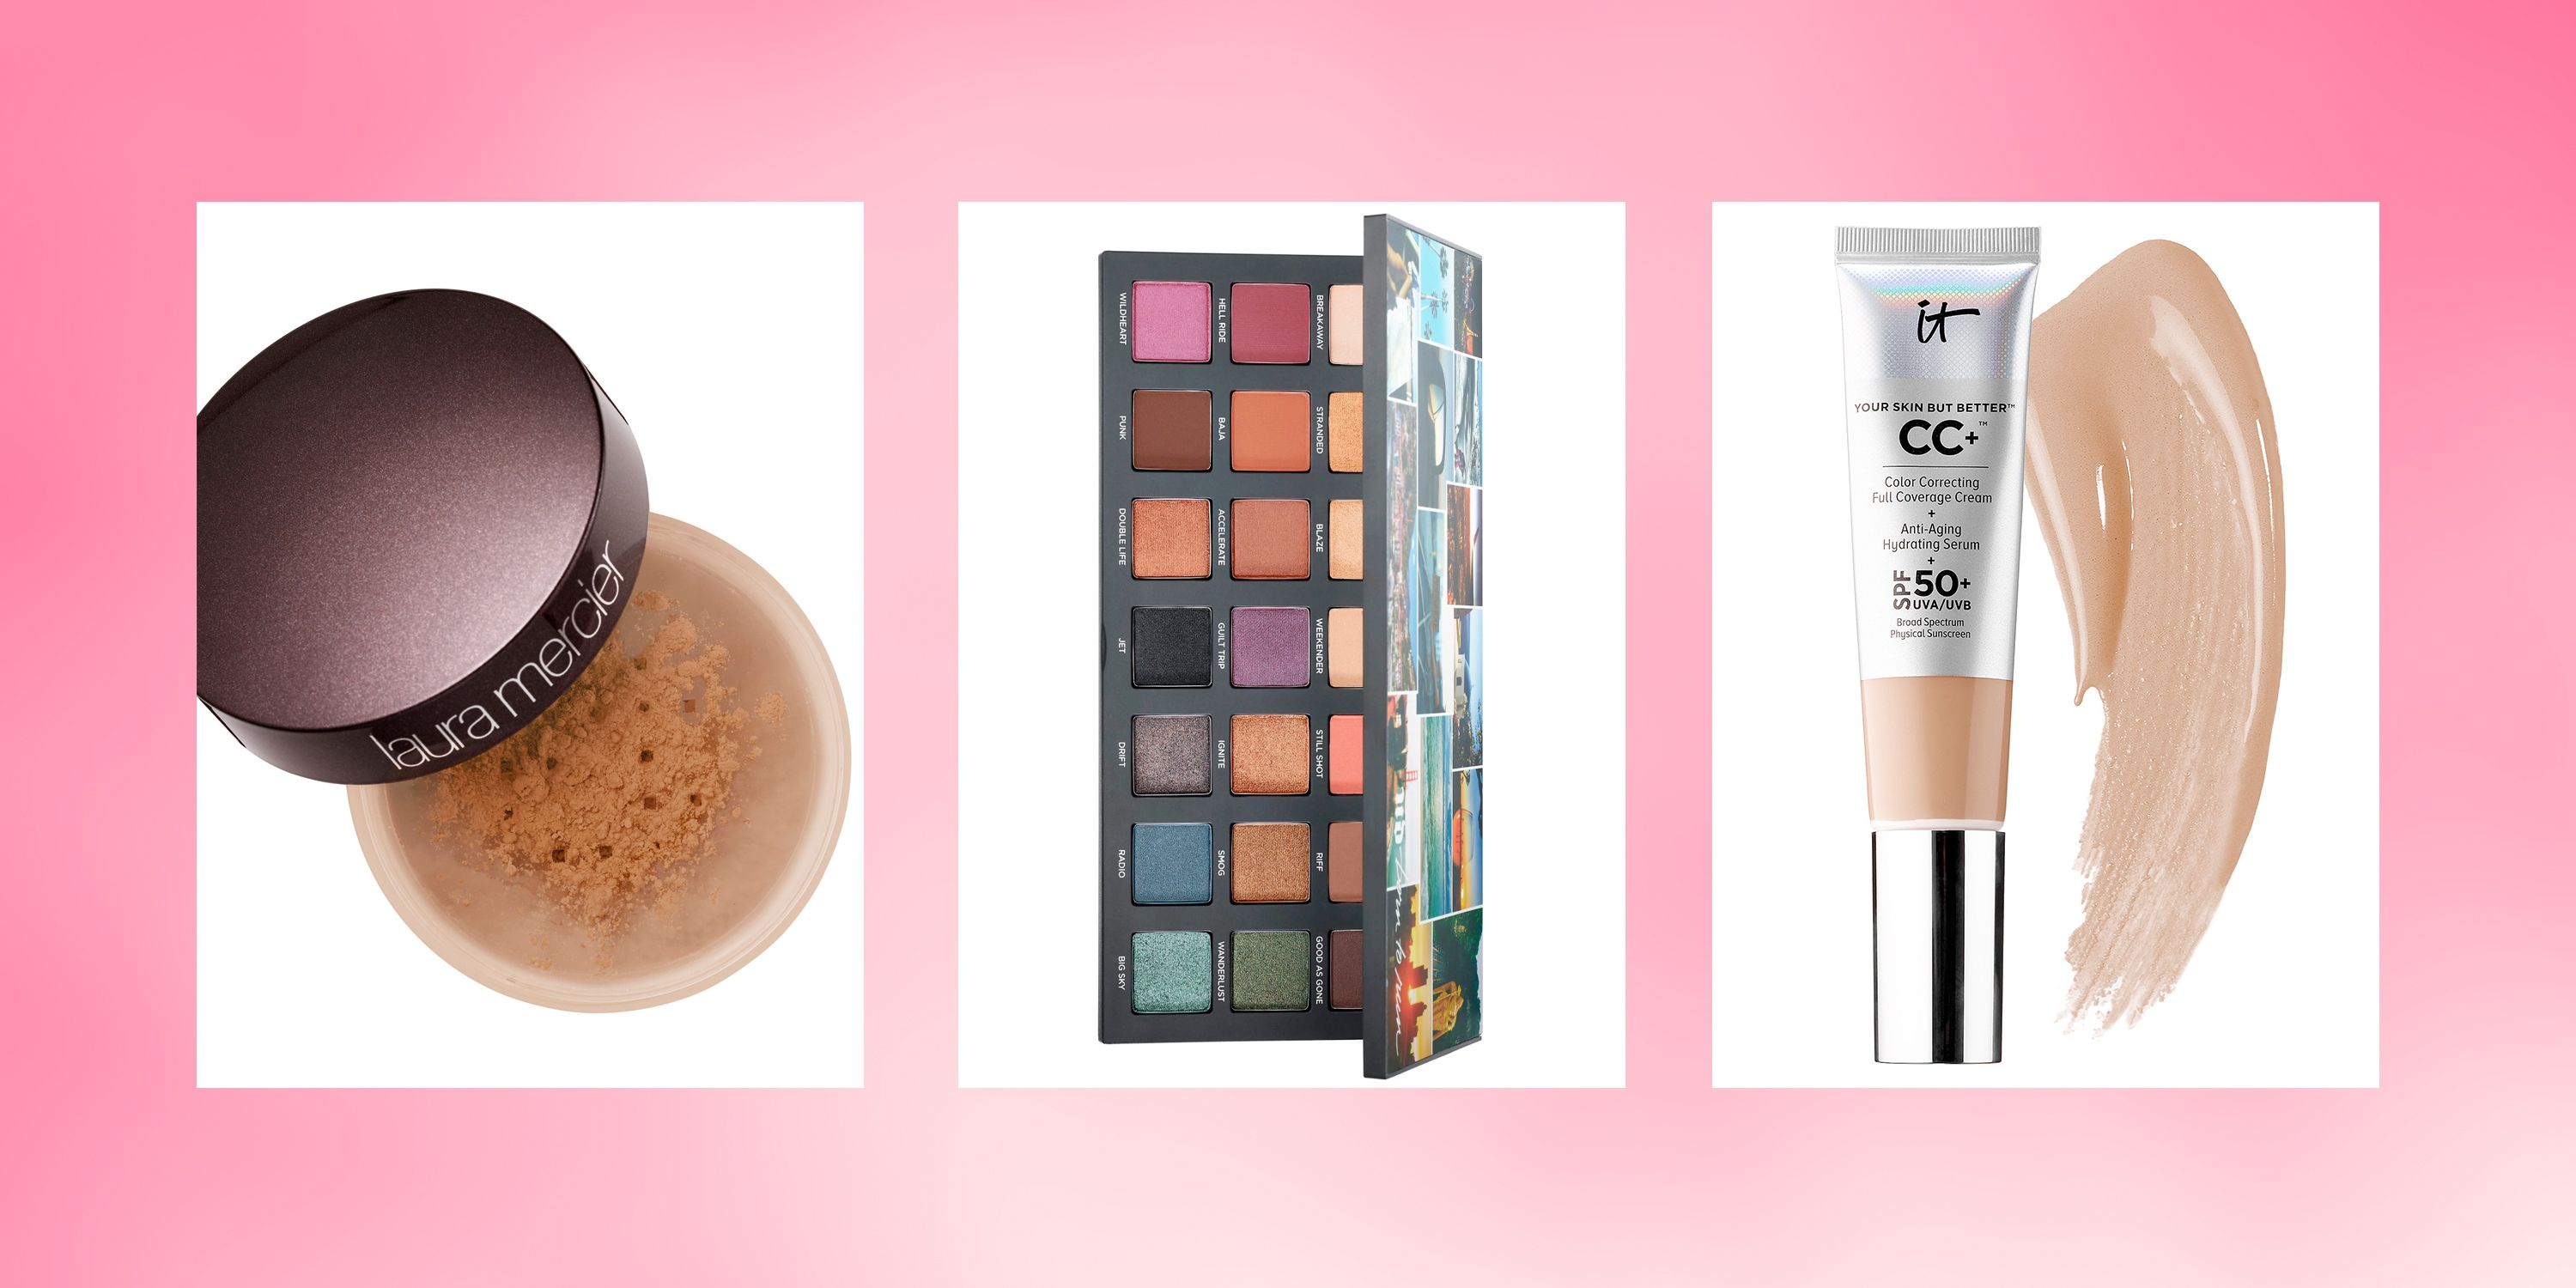 These Are the 7 Best-Selling Sephora Beauty Products RightNow These Are the 7 Best-Selling Sephora Beauty Products RightNow new picture